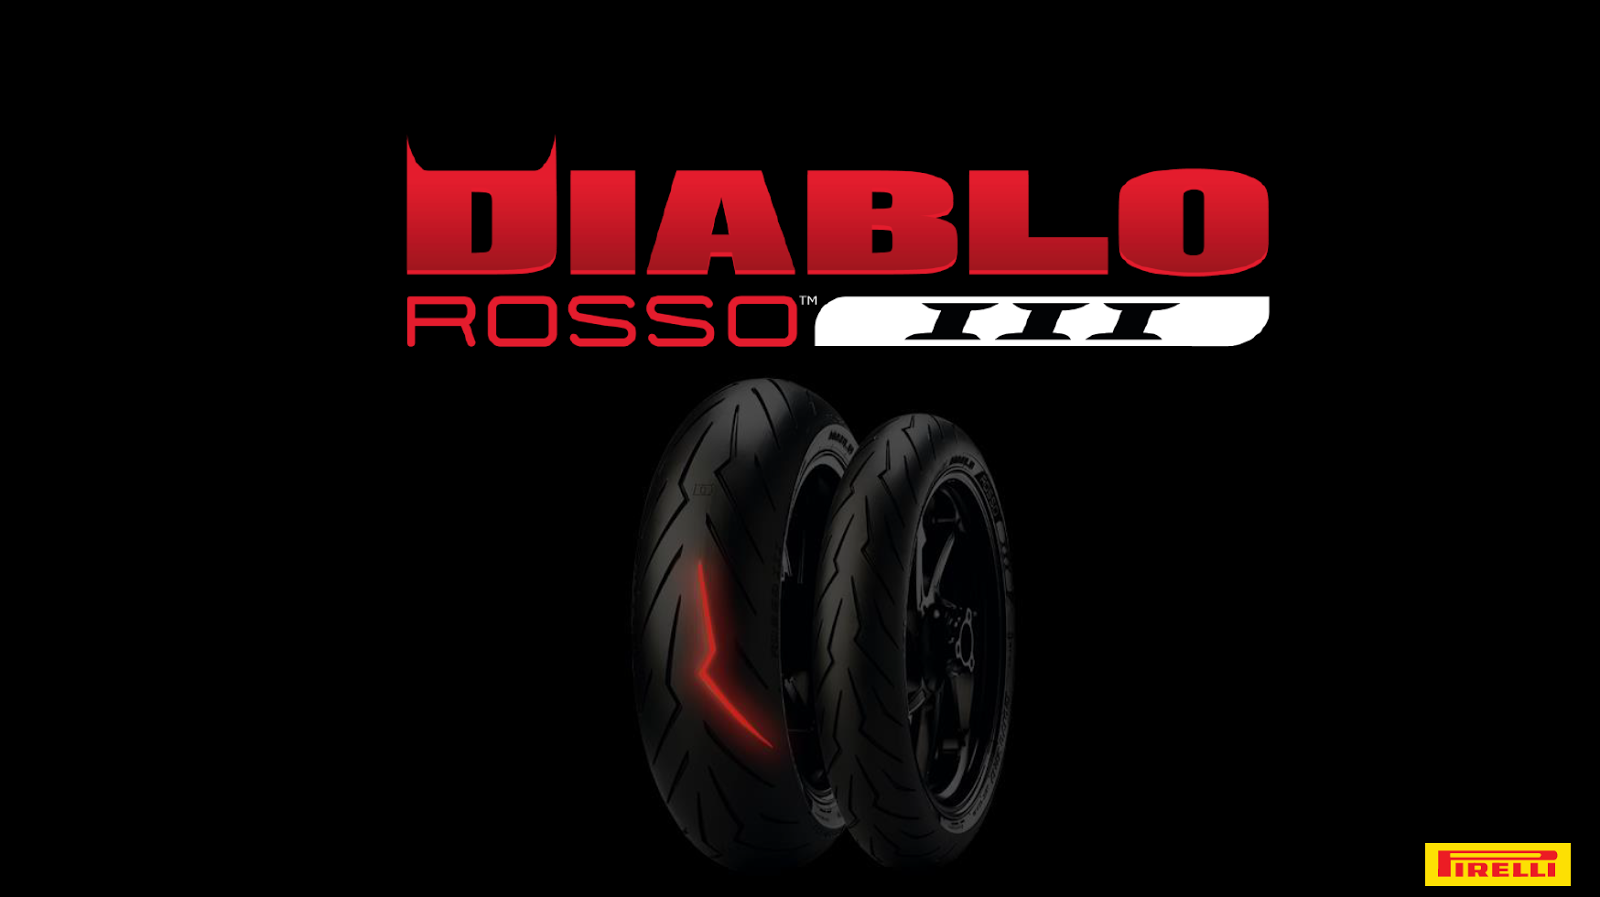 vaune phan pirelli blown away by the bmw s1000rr fitted on with diablo rosso iii at my first. Black Bedroom Furniture Sets. Home Design Ideas